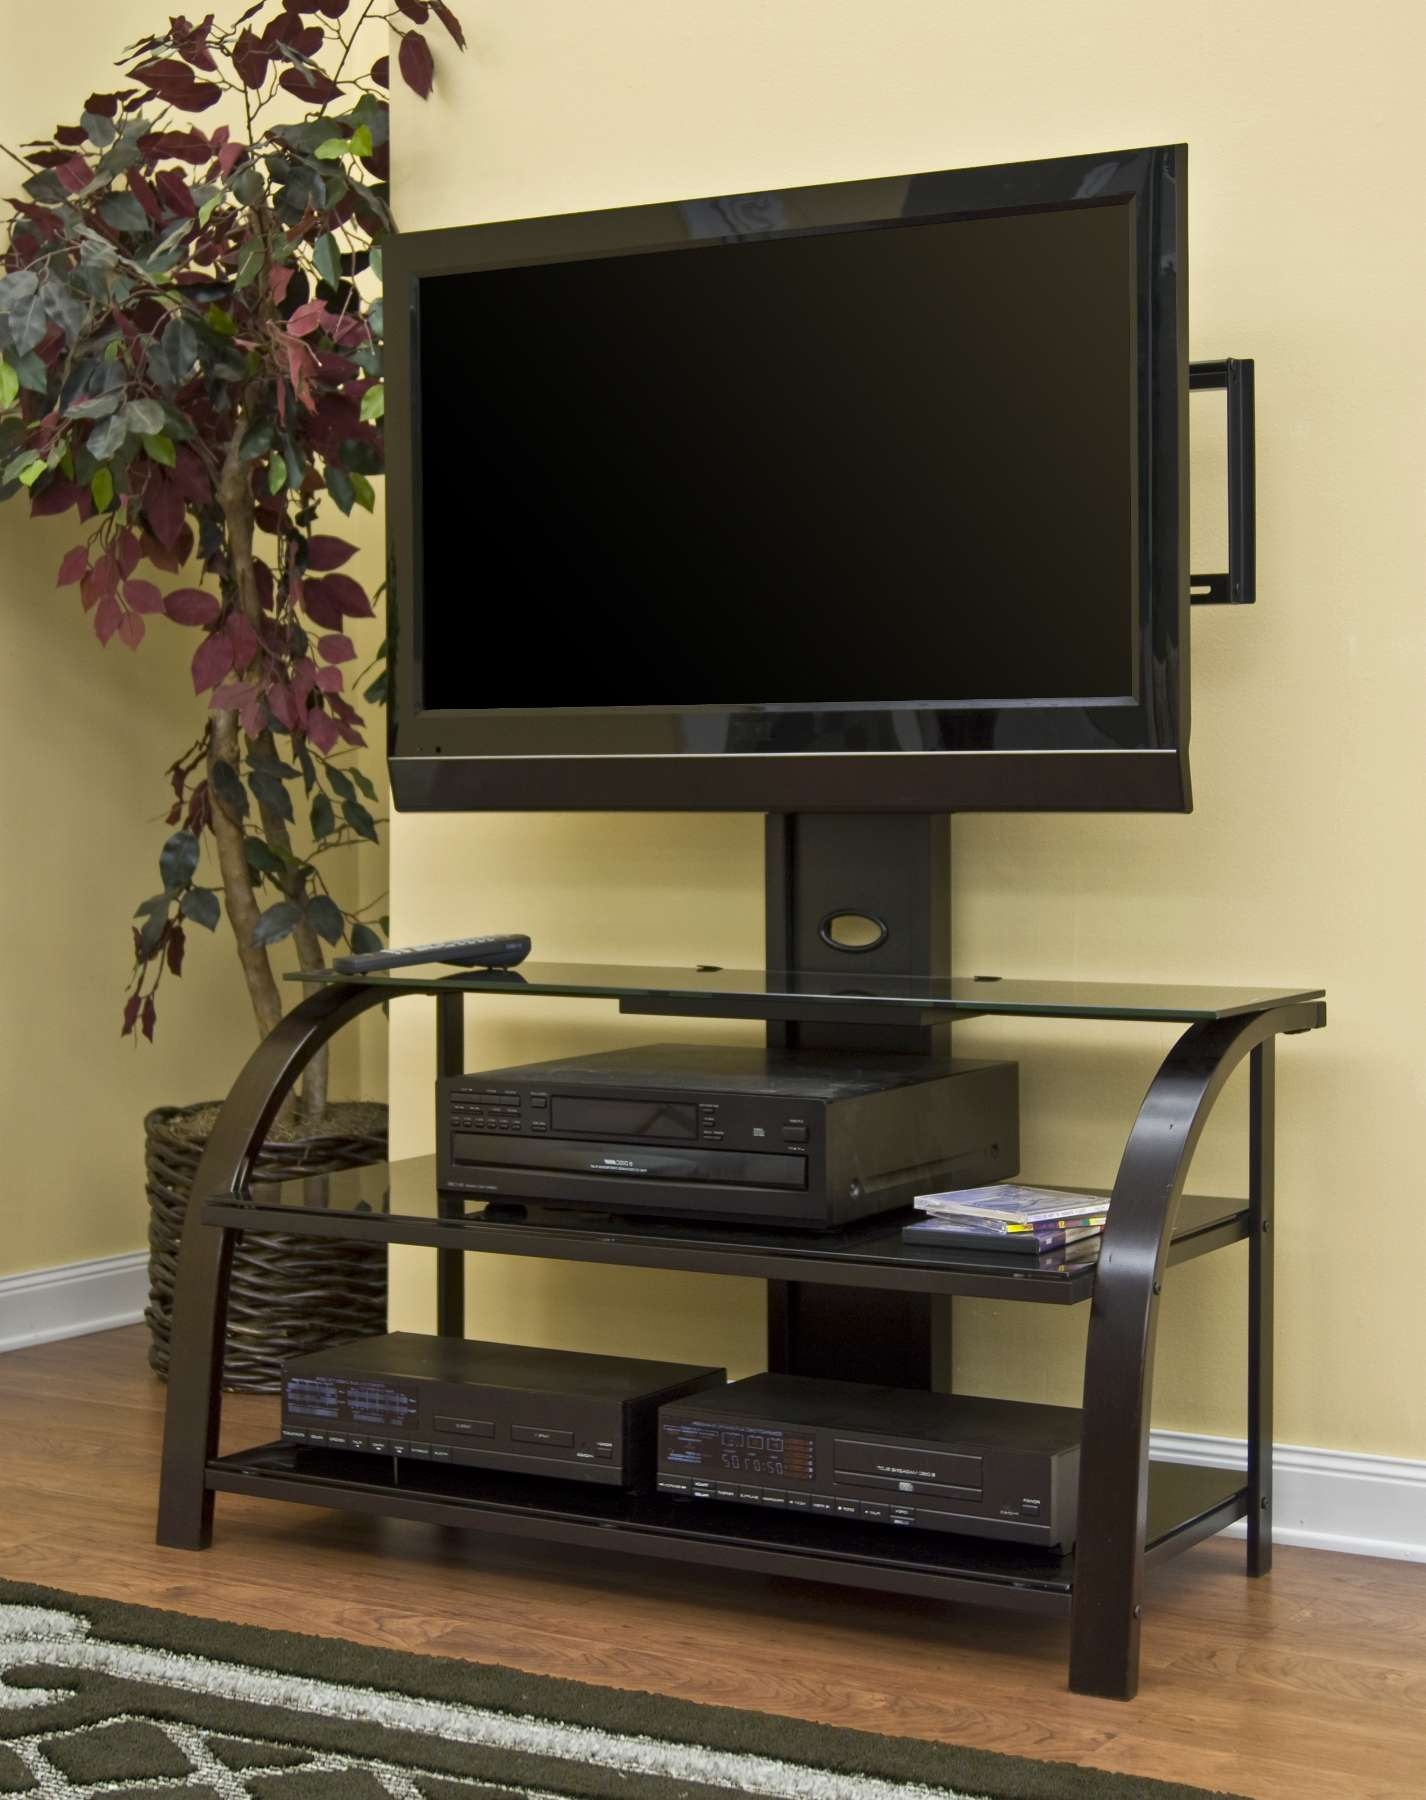 Furnitures : Tv Stand With Mount Inch Furniture The Living Room Within Denver Tv Stands (View 15 of 15)